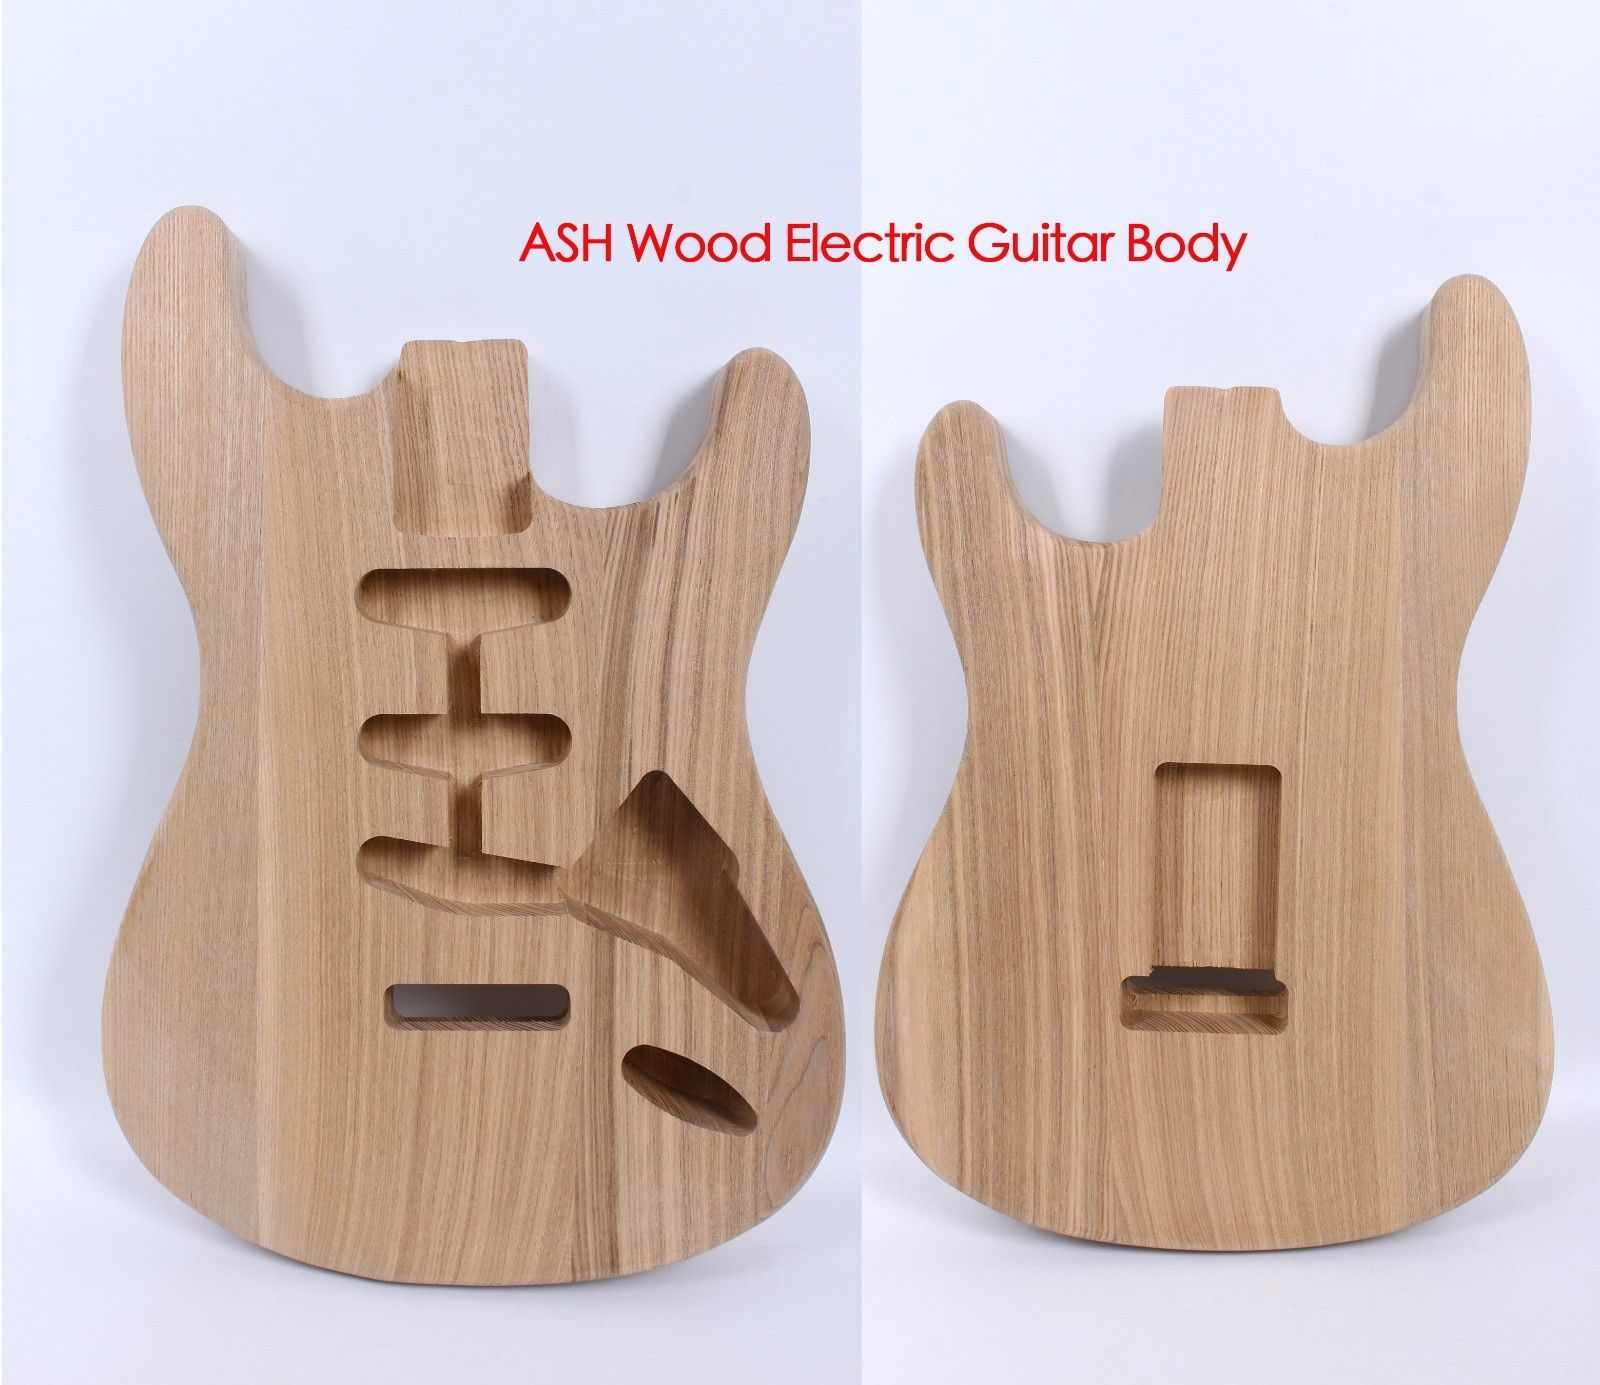 Yinfente Strat Electric guitar body Replacement ASH wood Guitar Accessories SSS Style